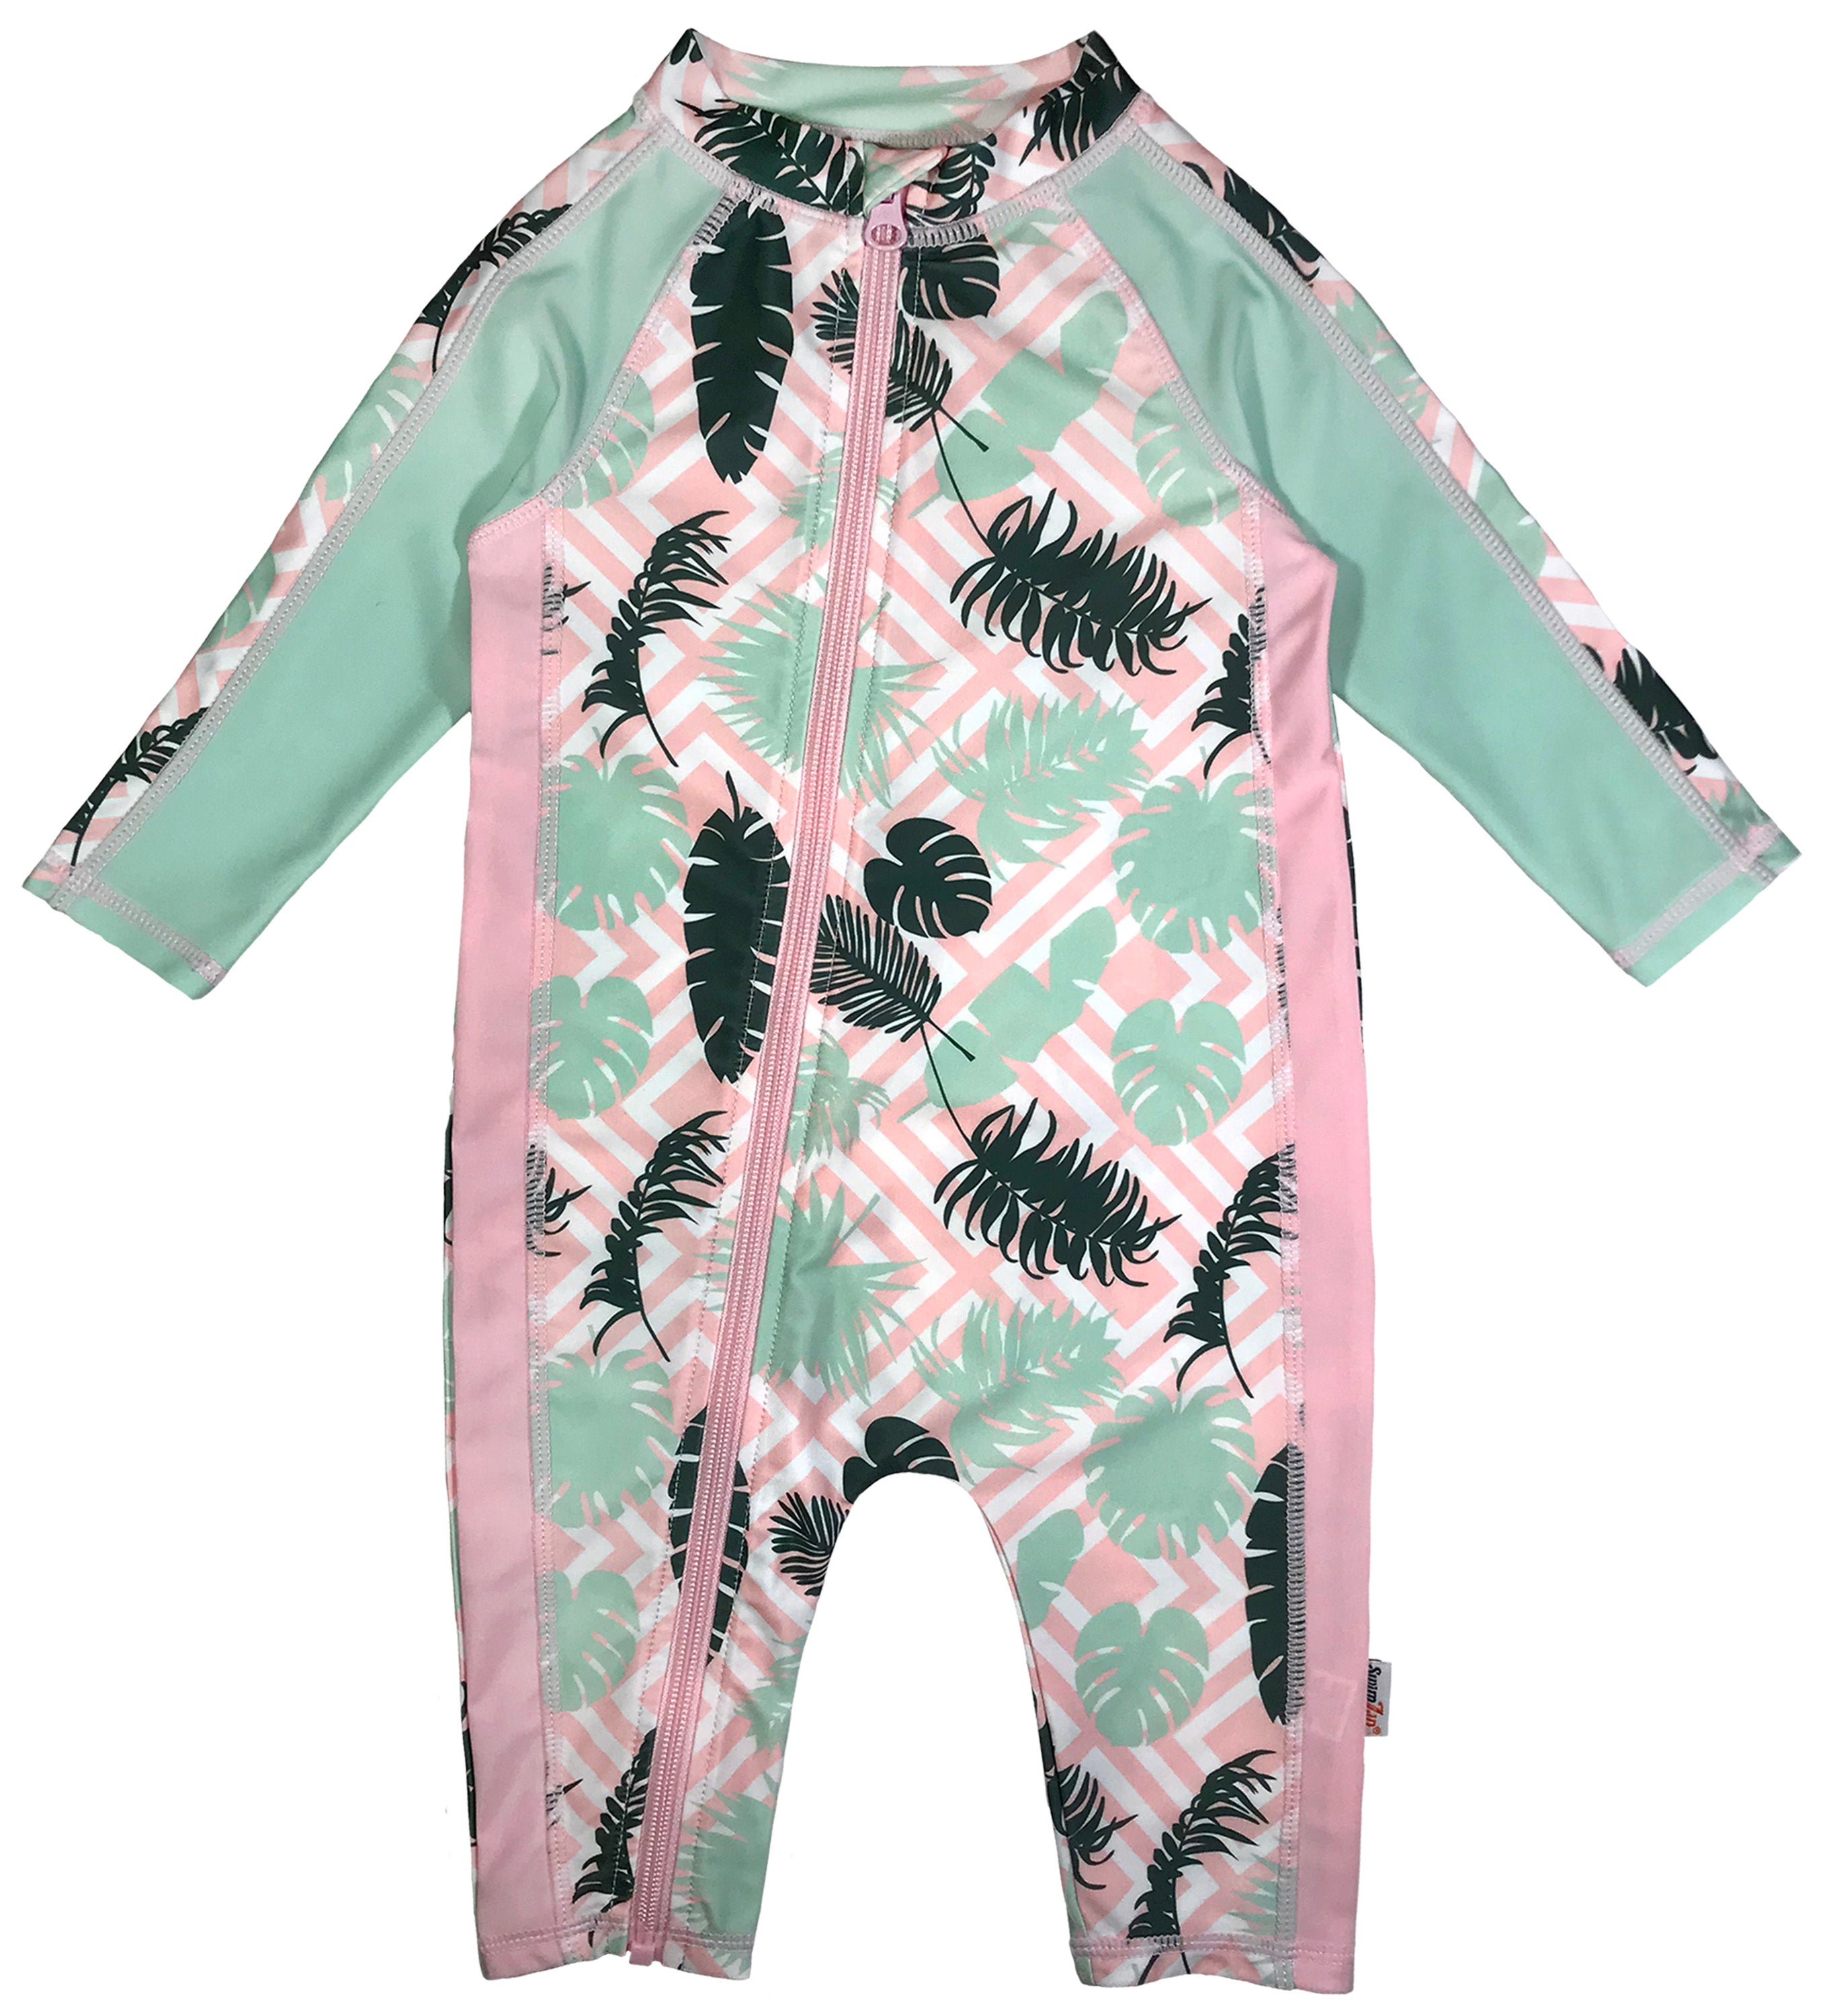 43f50309ade Sunsuit - Girl Long Sleeve Romper Swimsuit with UPF 50+ UV Sun Protection